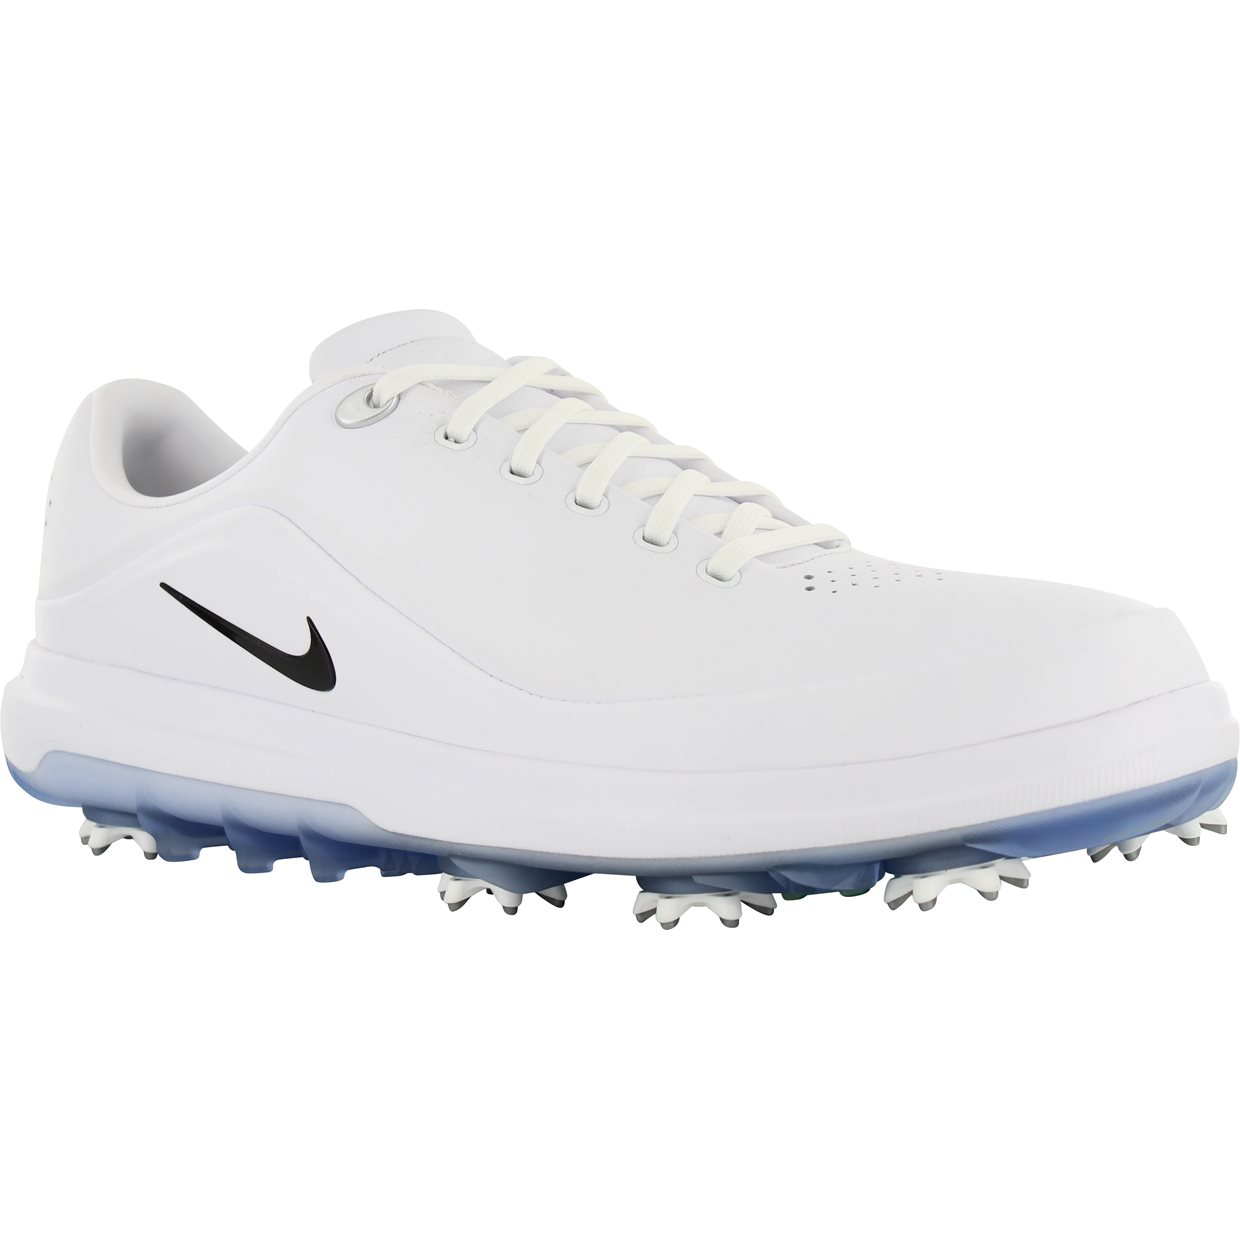 83aad1166 Nike Air Zoom Precision Golf Shoes at GlobalGolf.com